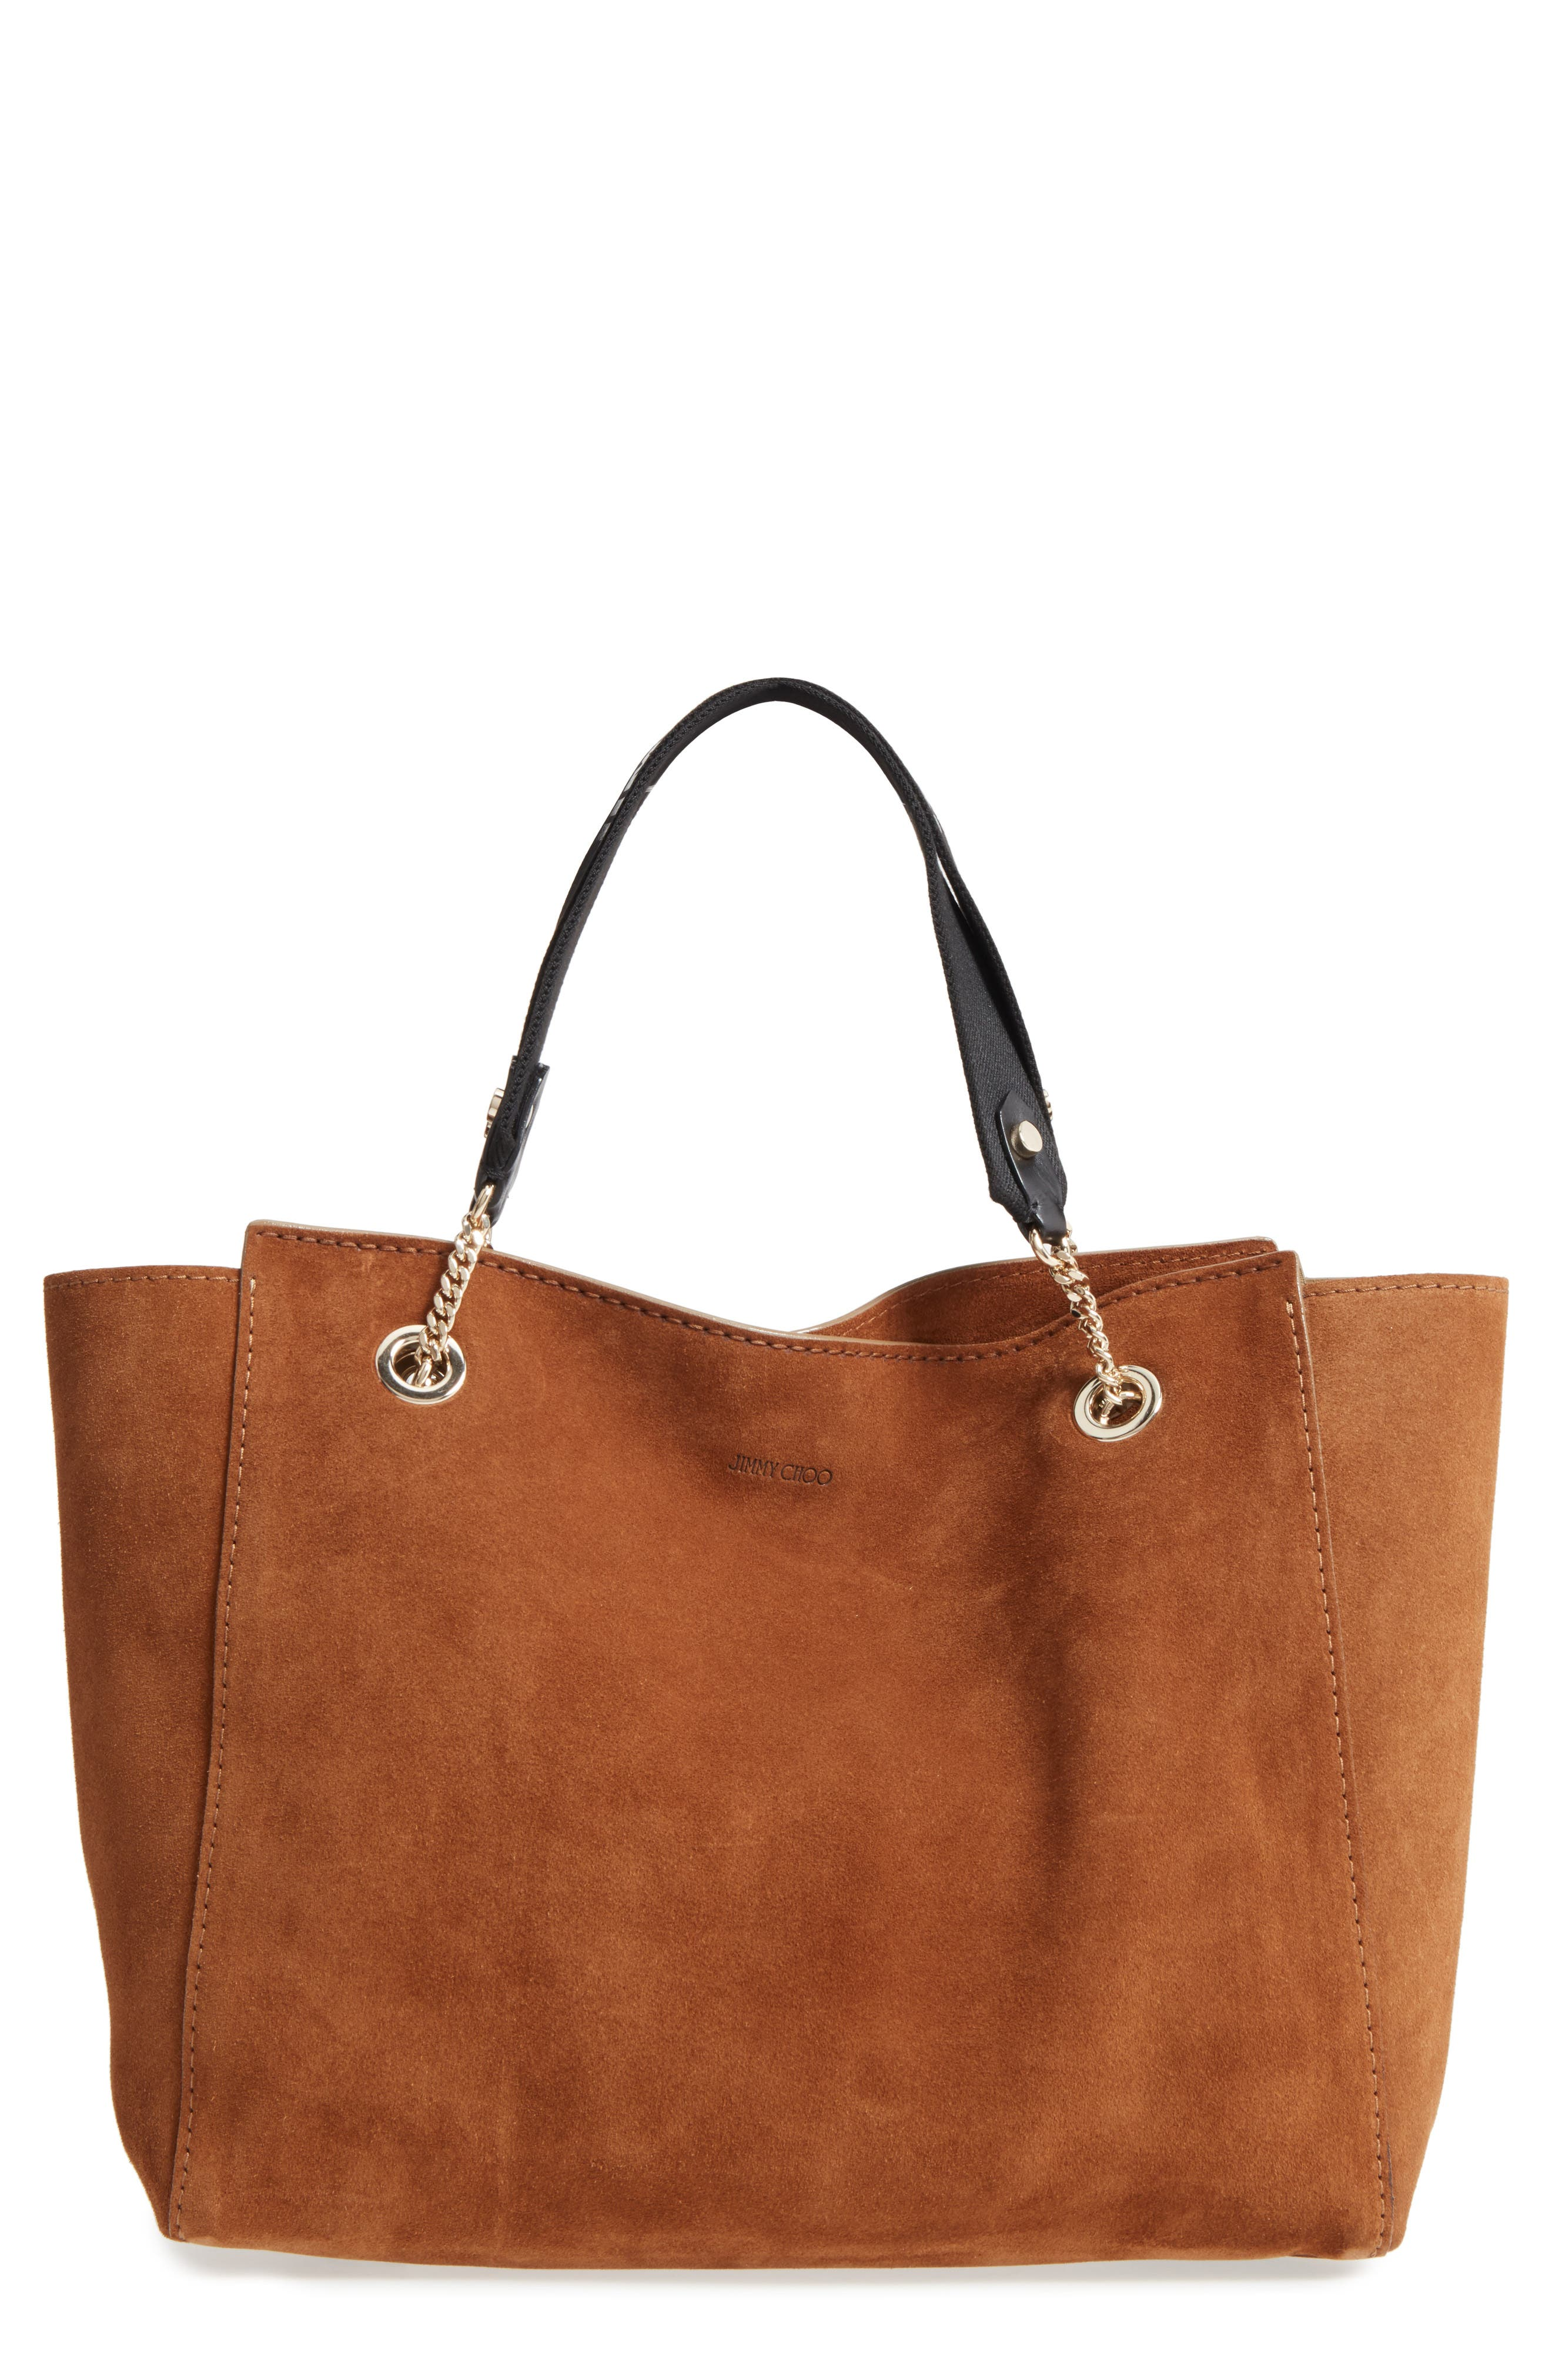 Flo Suede Tote,                             Main thumbnail 1, color,                             210